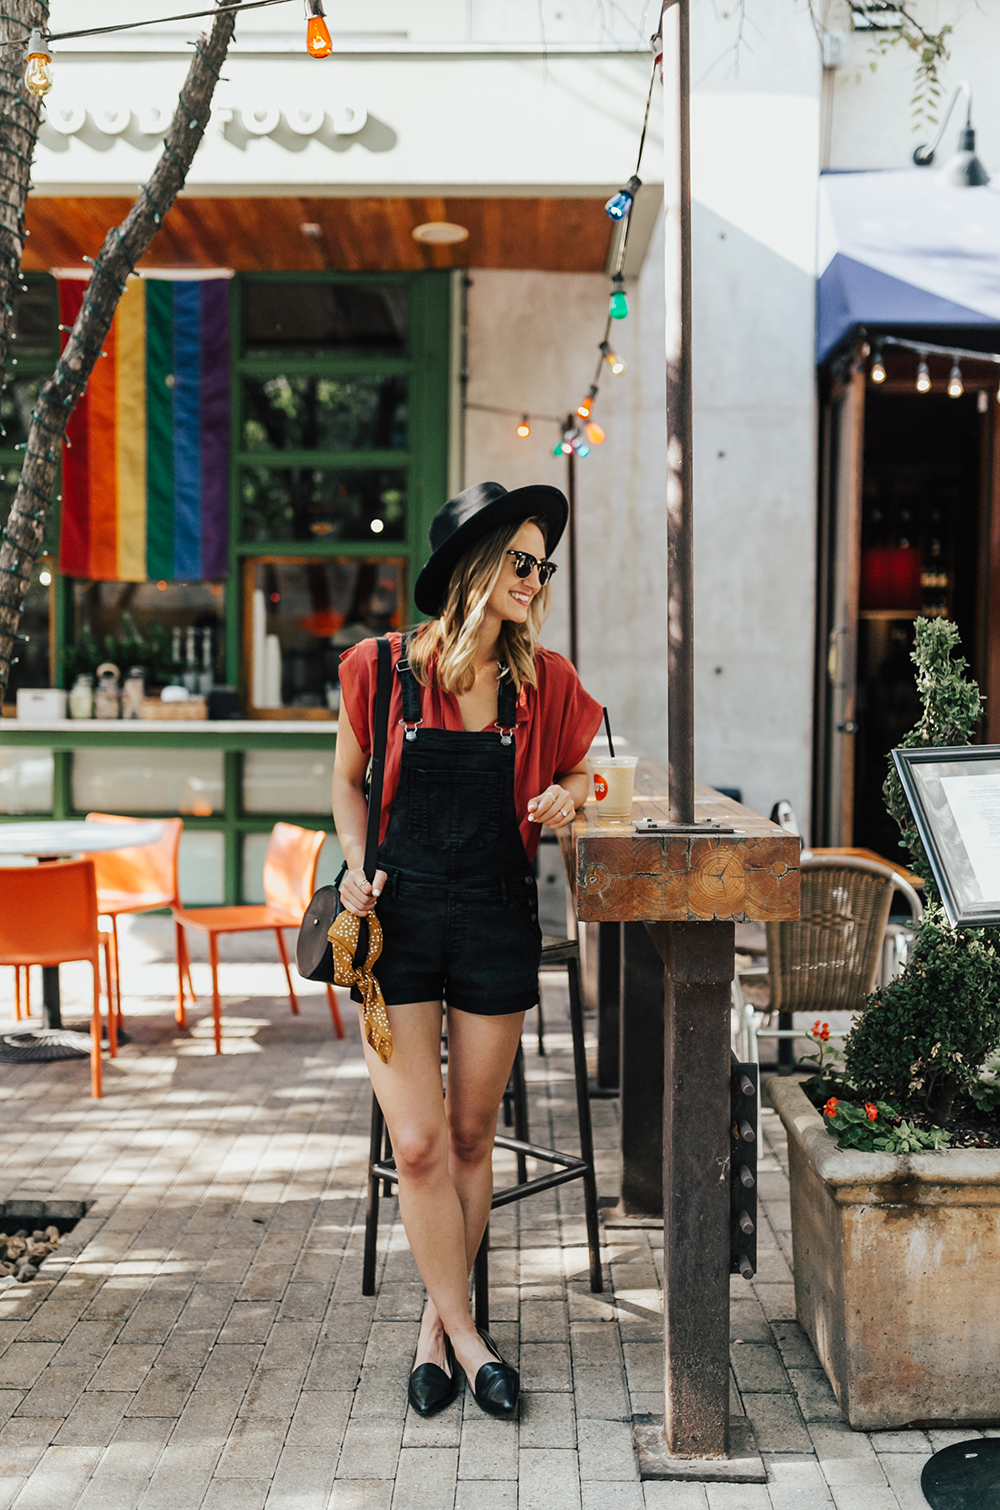 livvyland-blog-olivia-watson-black-short-overalls-abercrombie-everlane-black-pointed-toe-flats-summer-outfit-jos-coffee-second-street-austin-texas-fashion-blogger-1